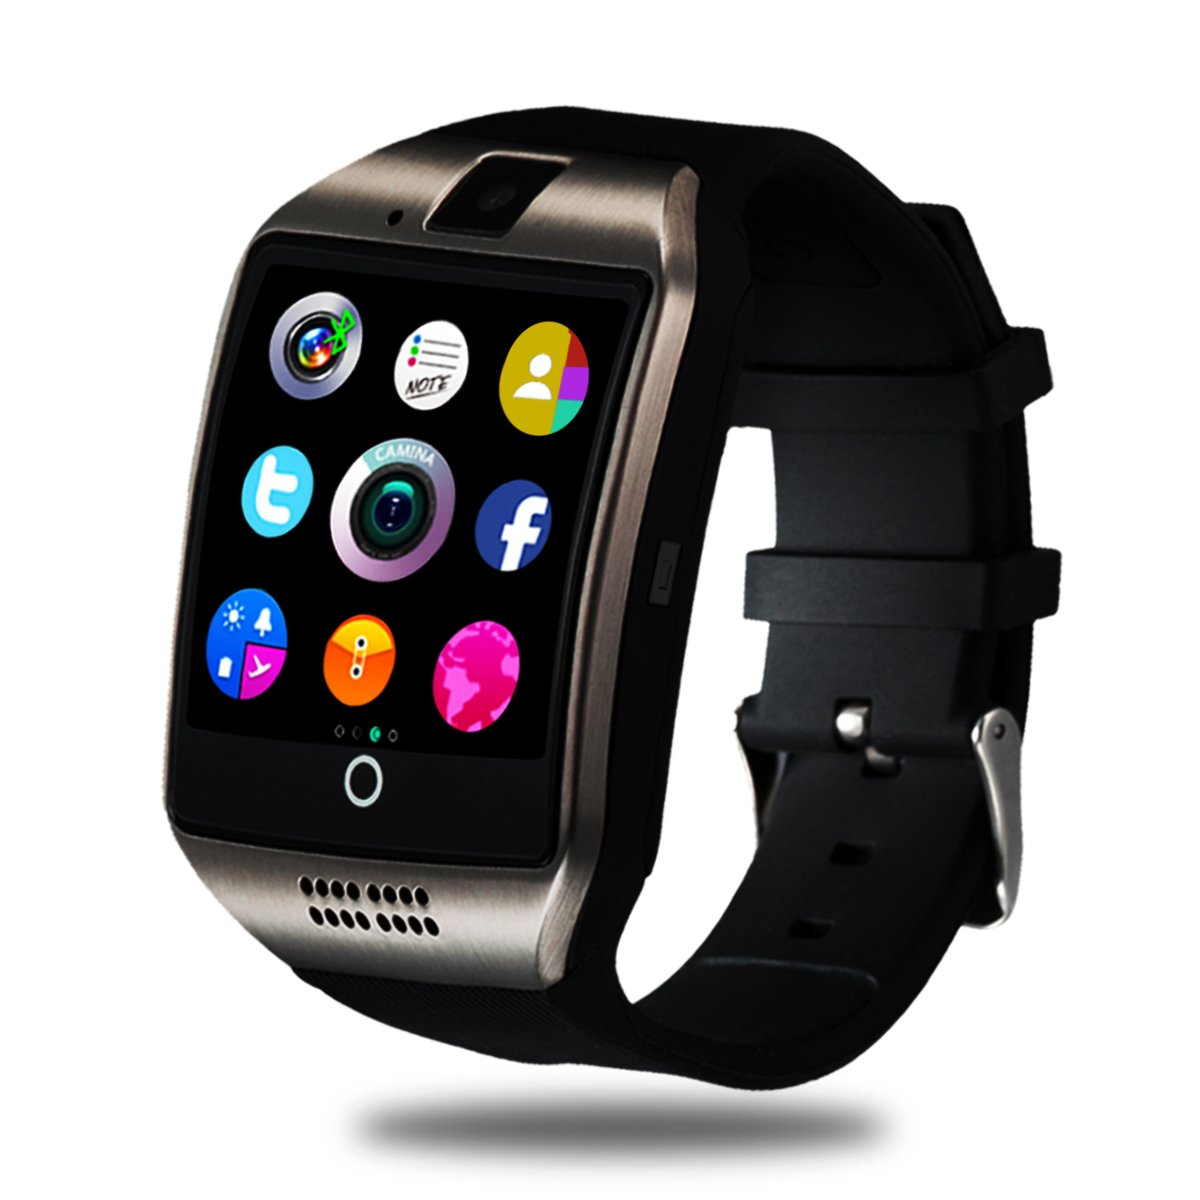 Smart Watch for Android Phones, Bluetooth Smartwatch Touchscreen with Camera, Smart Watches Waterproof Smart Wrist Watch Phone compatible Android Samsung IOS iphone X 8 7 6 6S 5 (Black Q18) by Luckymore (Image #1)